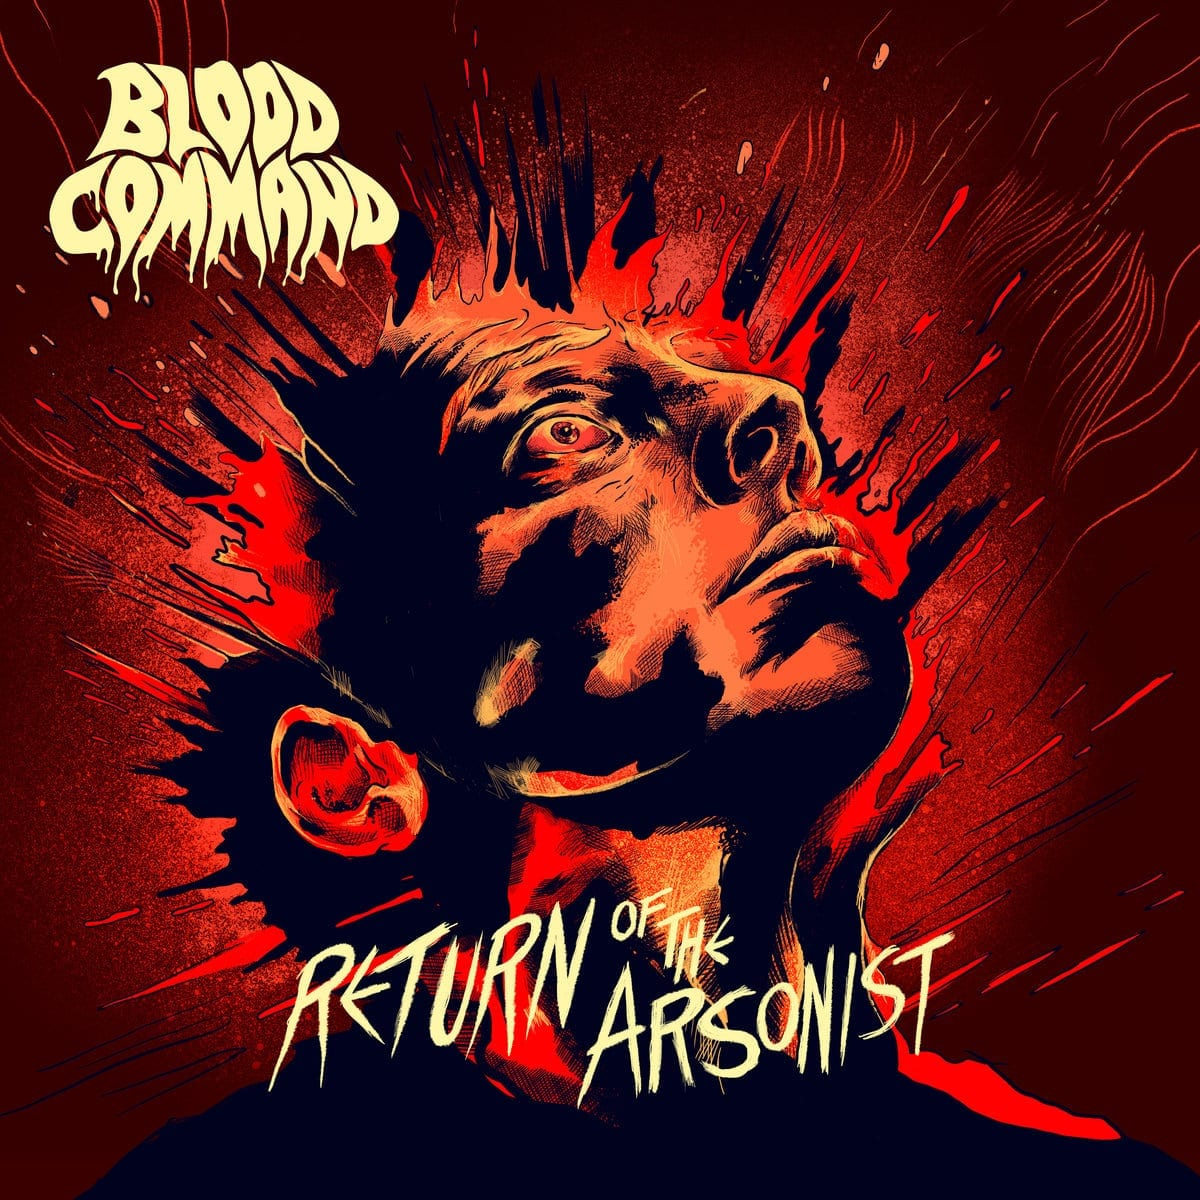 EP Review: Return of the Arsonist // Blood Command